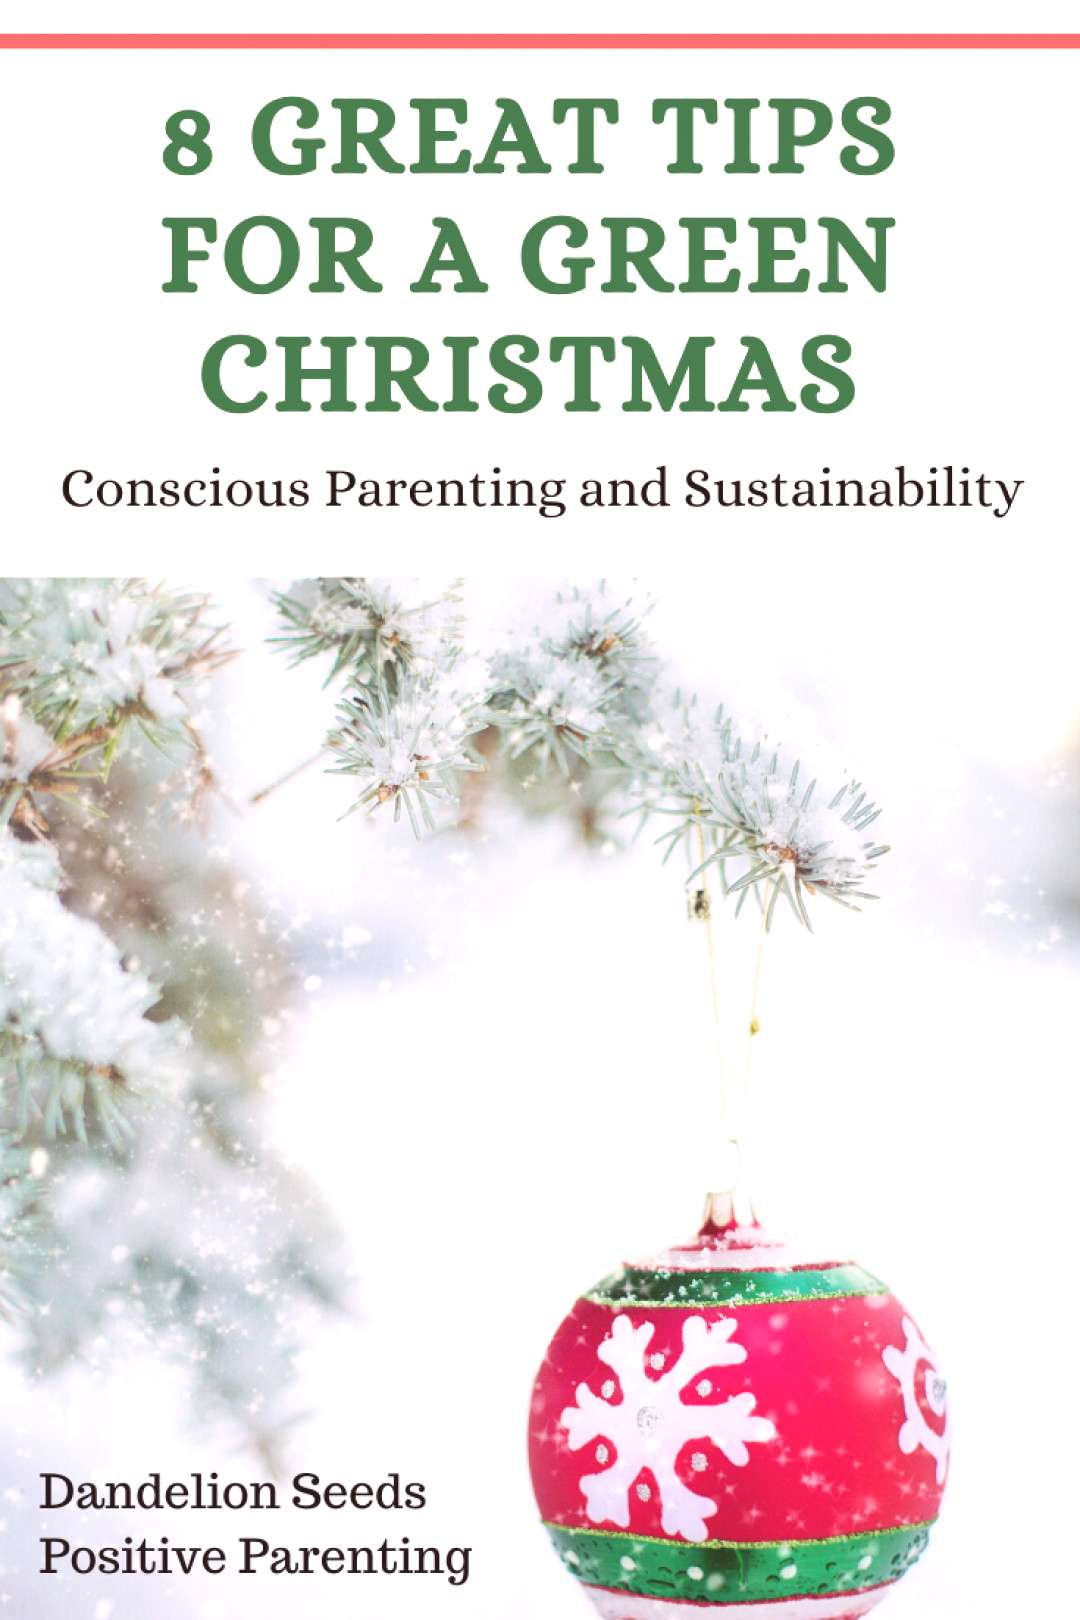 A Green Christmas 8 Tips for Sustainability - Dandelion Seeds 8 great tips to keep Christmas susta